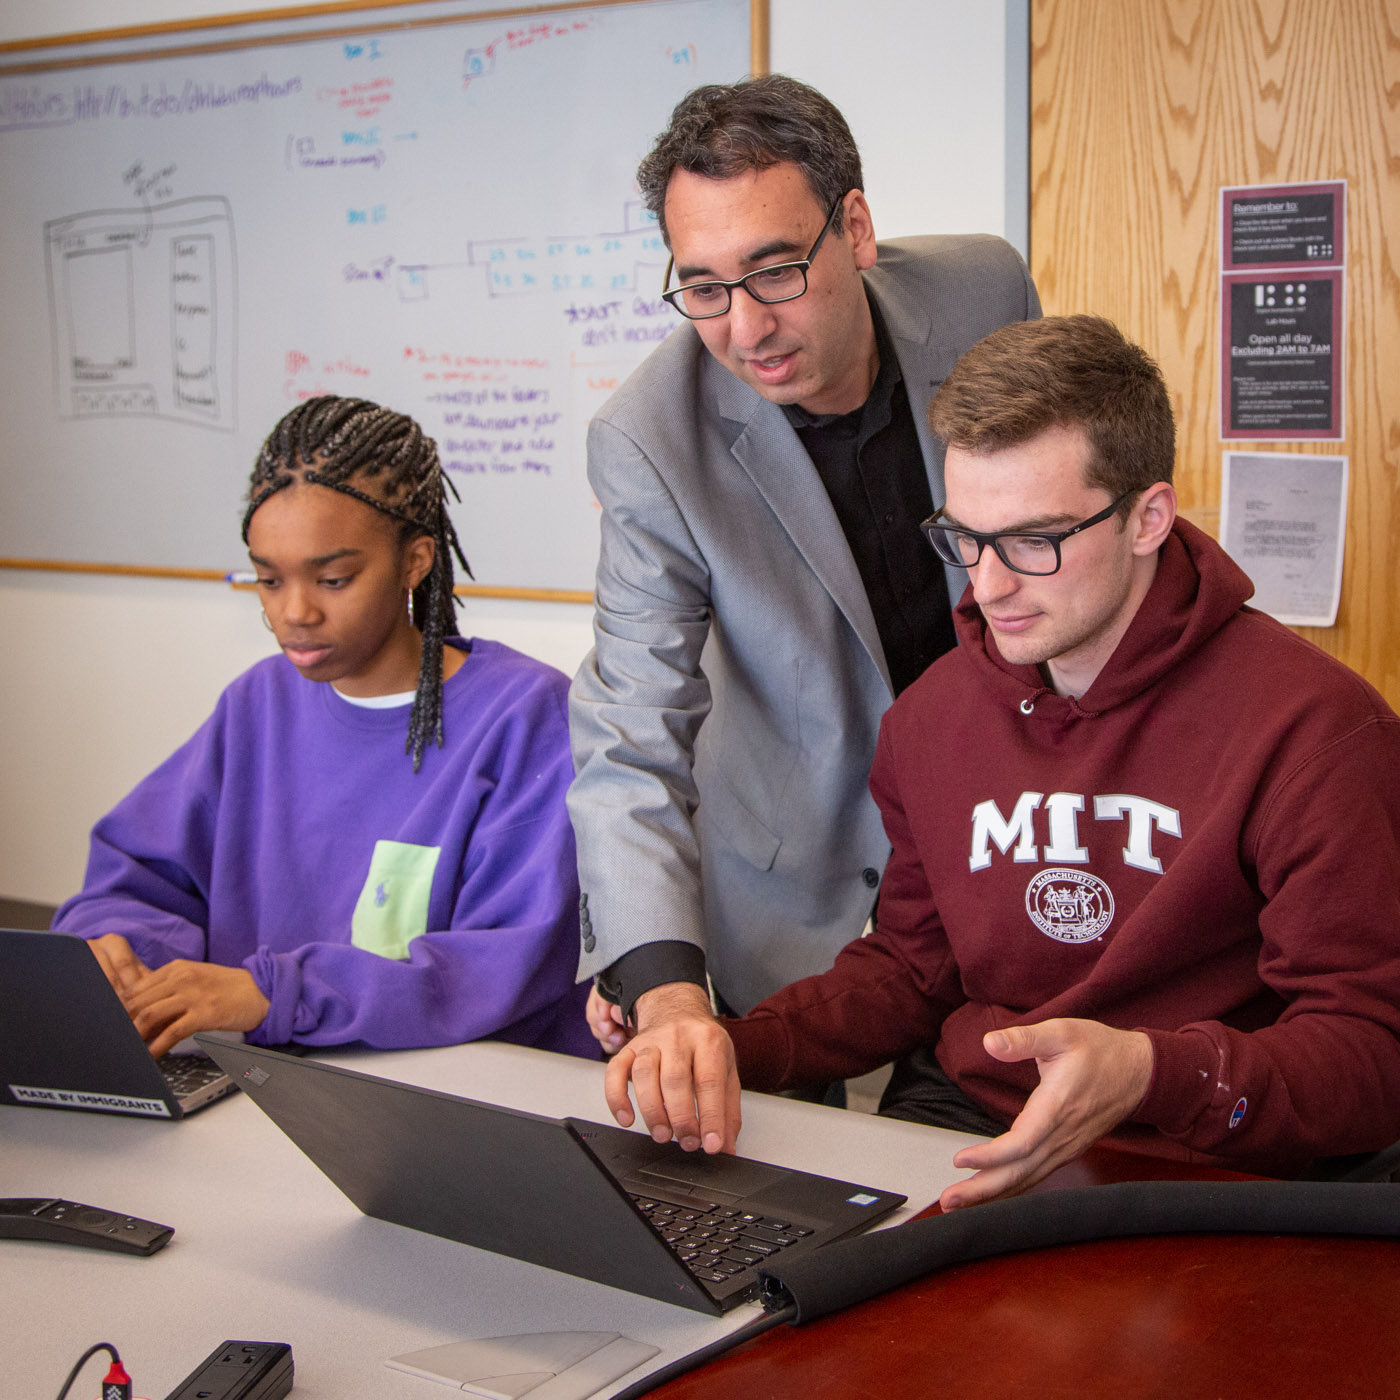 Prof. Cuthbert teaching at MIT